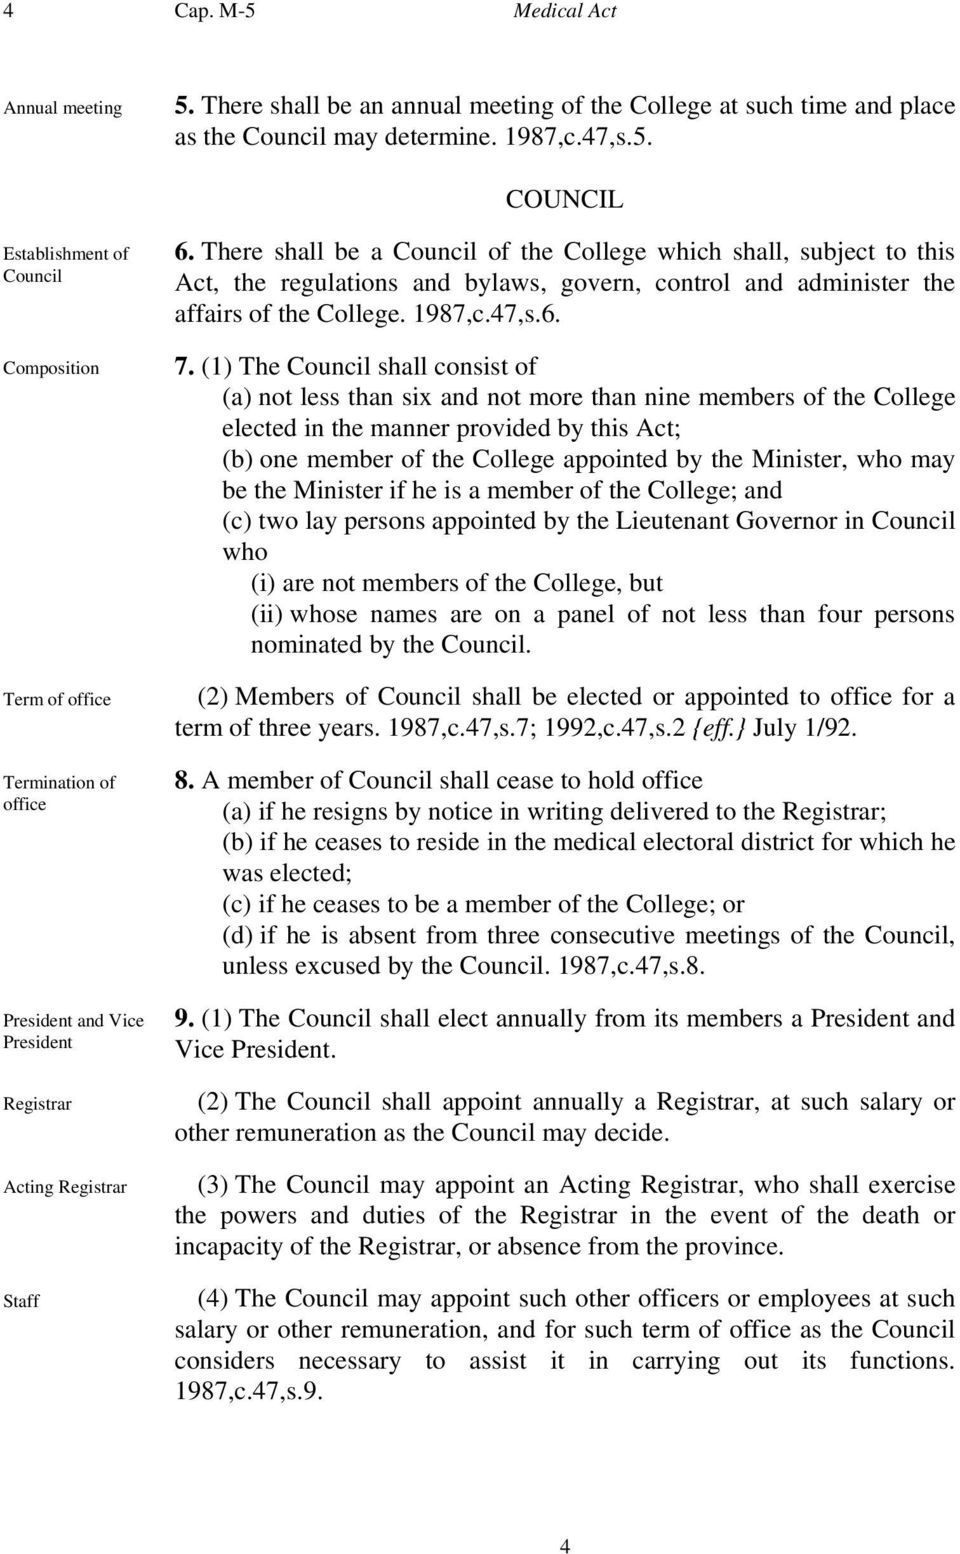 (1) The Council shall consist of (a) not less than six and not more than nine members of the College elected in the manner provided by this Act; (b) one member of the College appointed by the